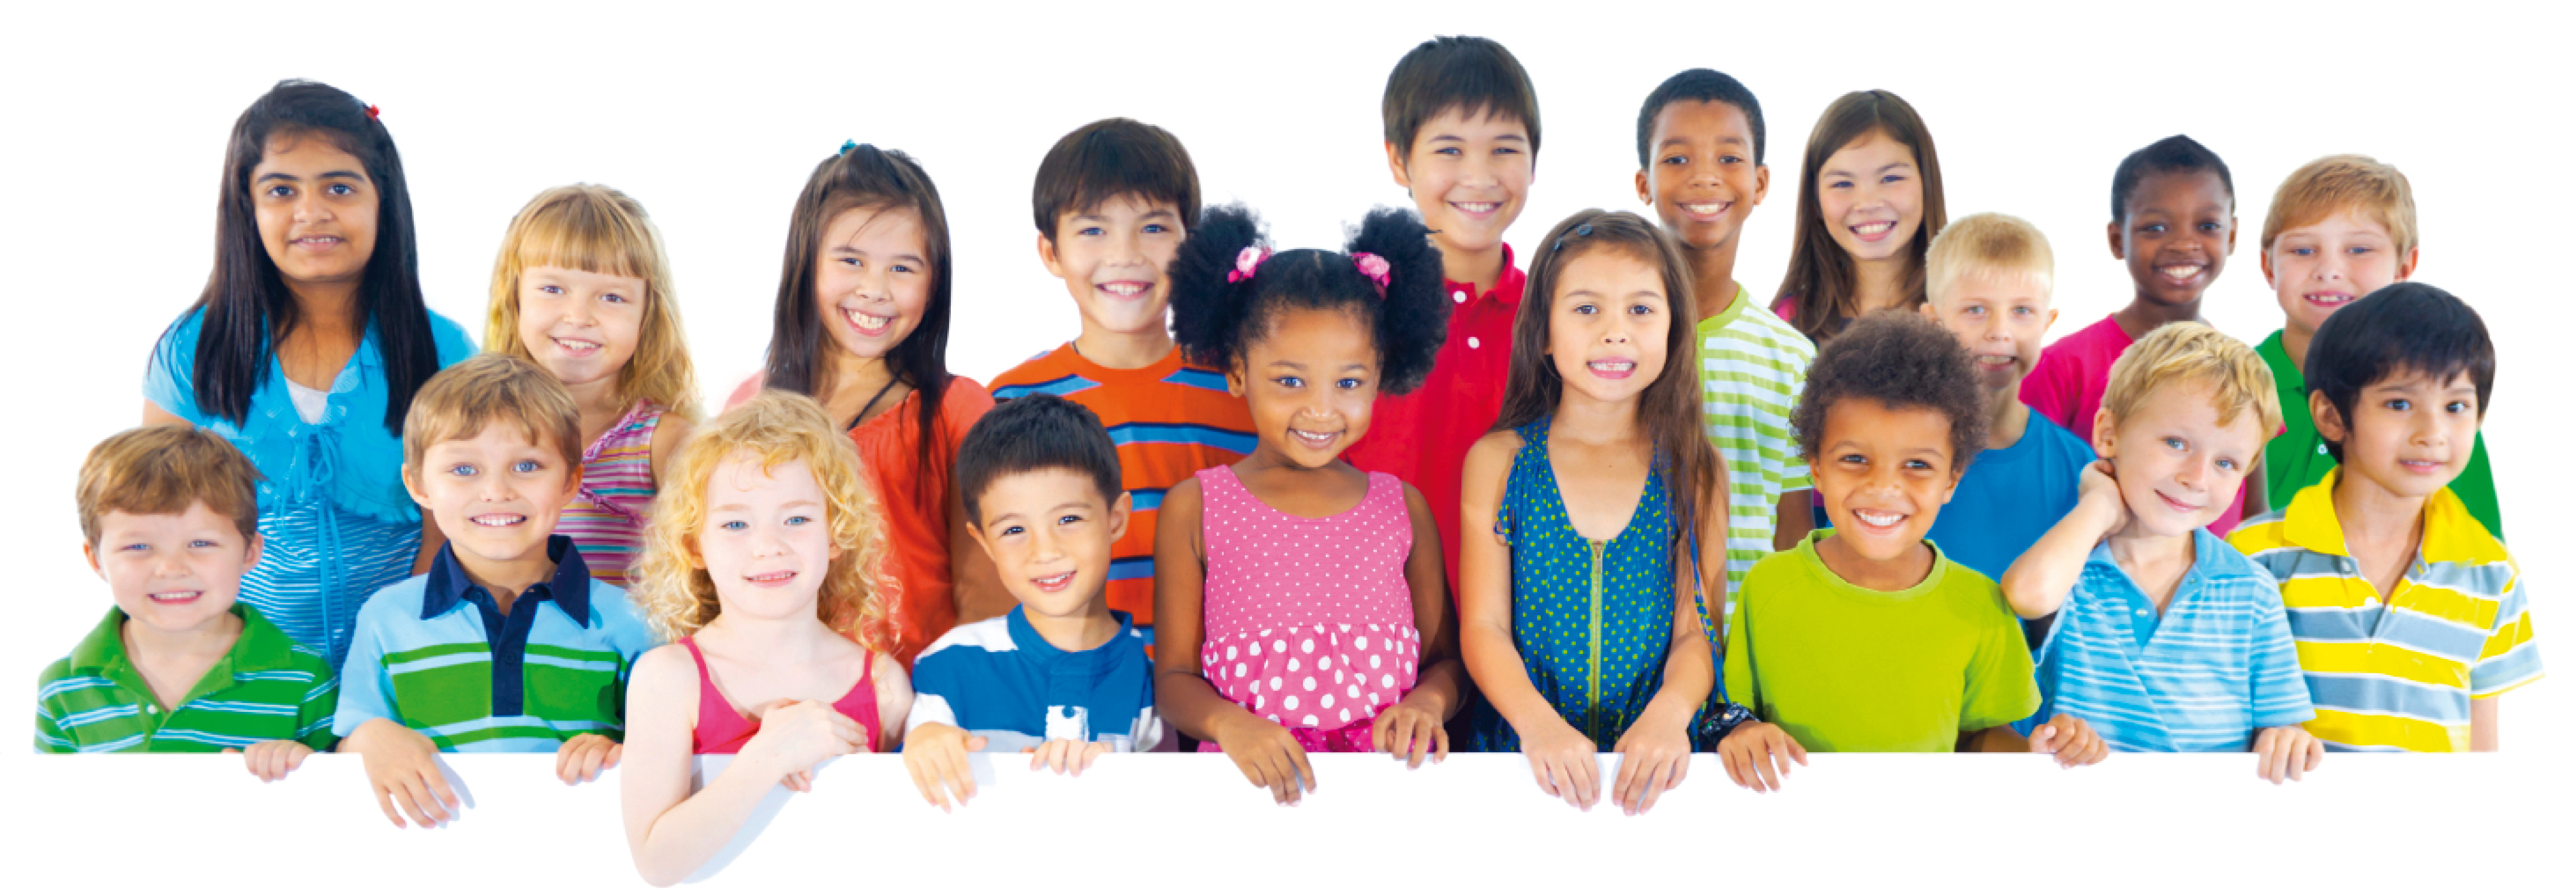 Group of Children of Different Nationalities 742.79 Kb